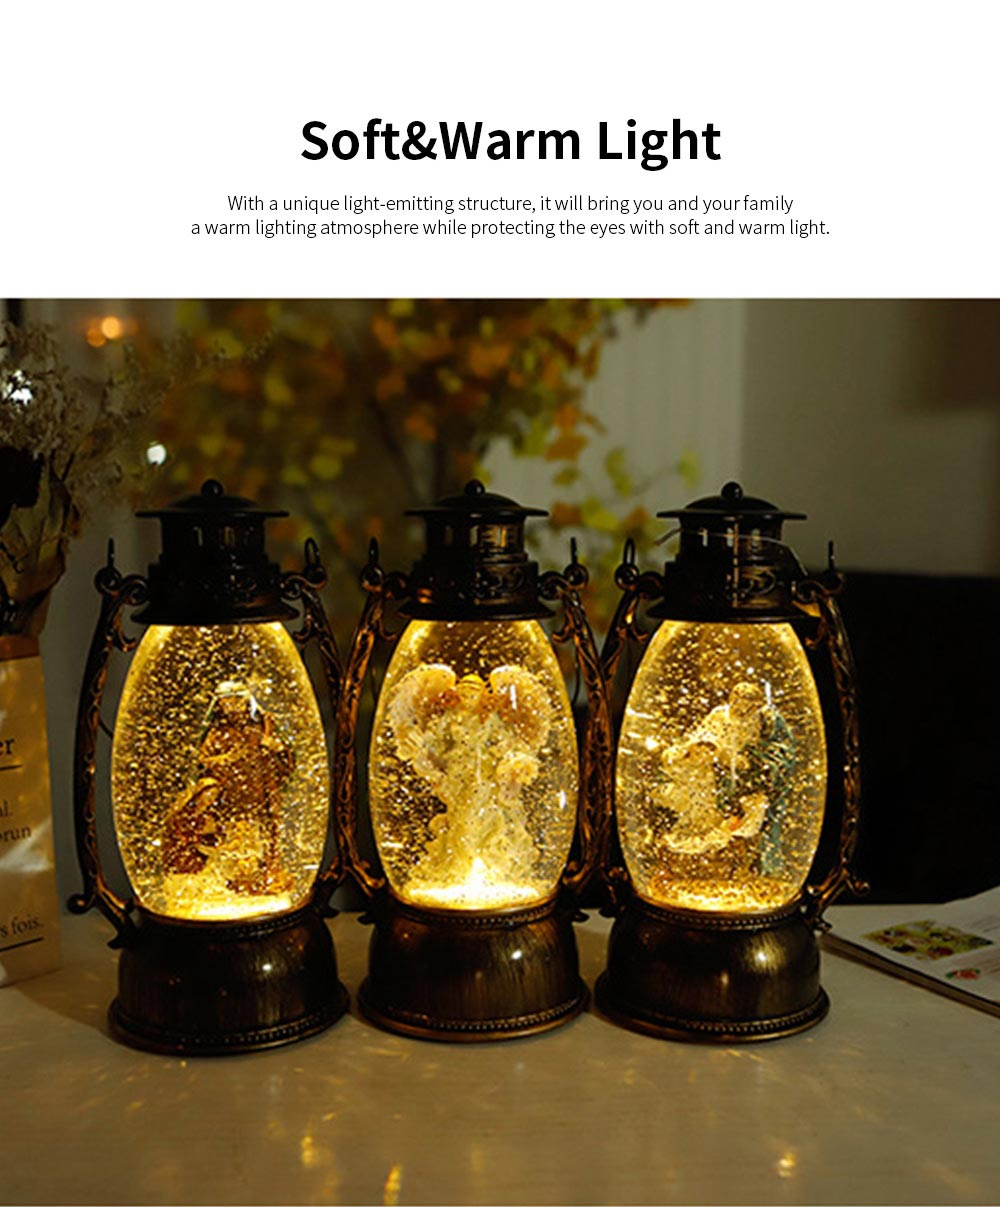 Christmas Resin Table Lamp European Retro Oval Lantern Light for Living Room Bedroom Home Decoration with Warm Light Shockproof Creative Design 3